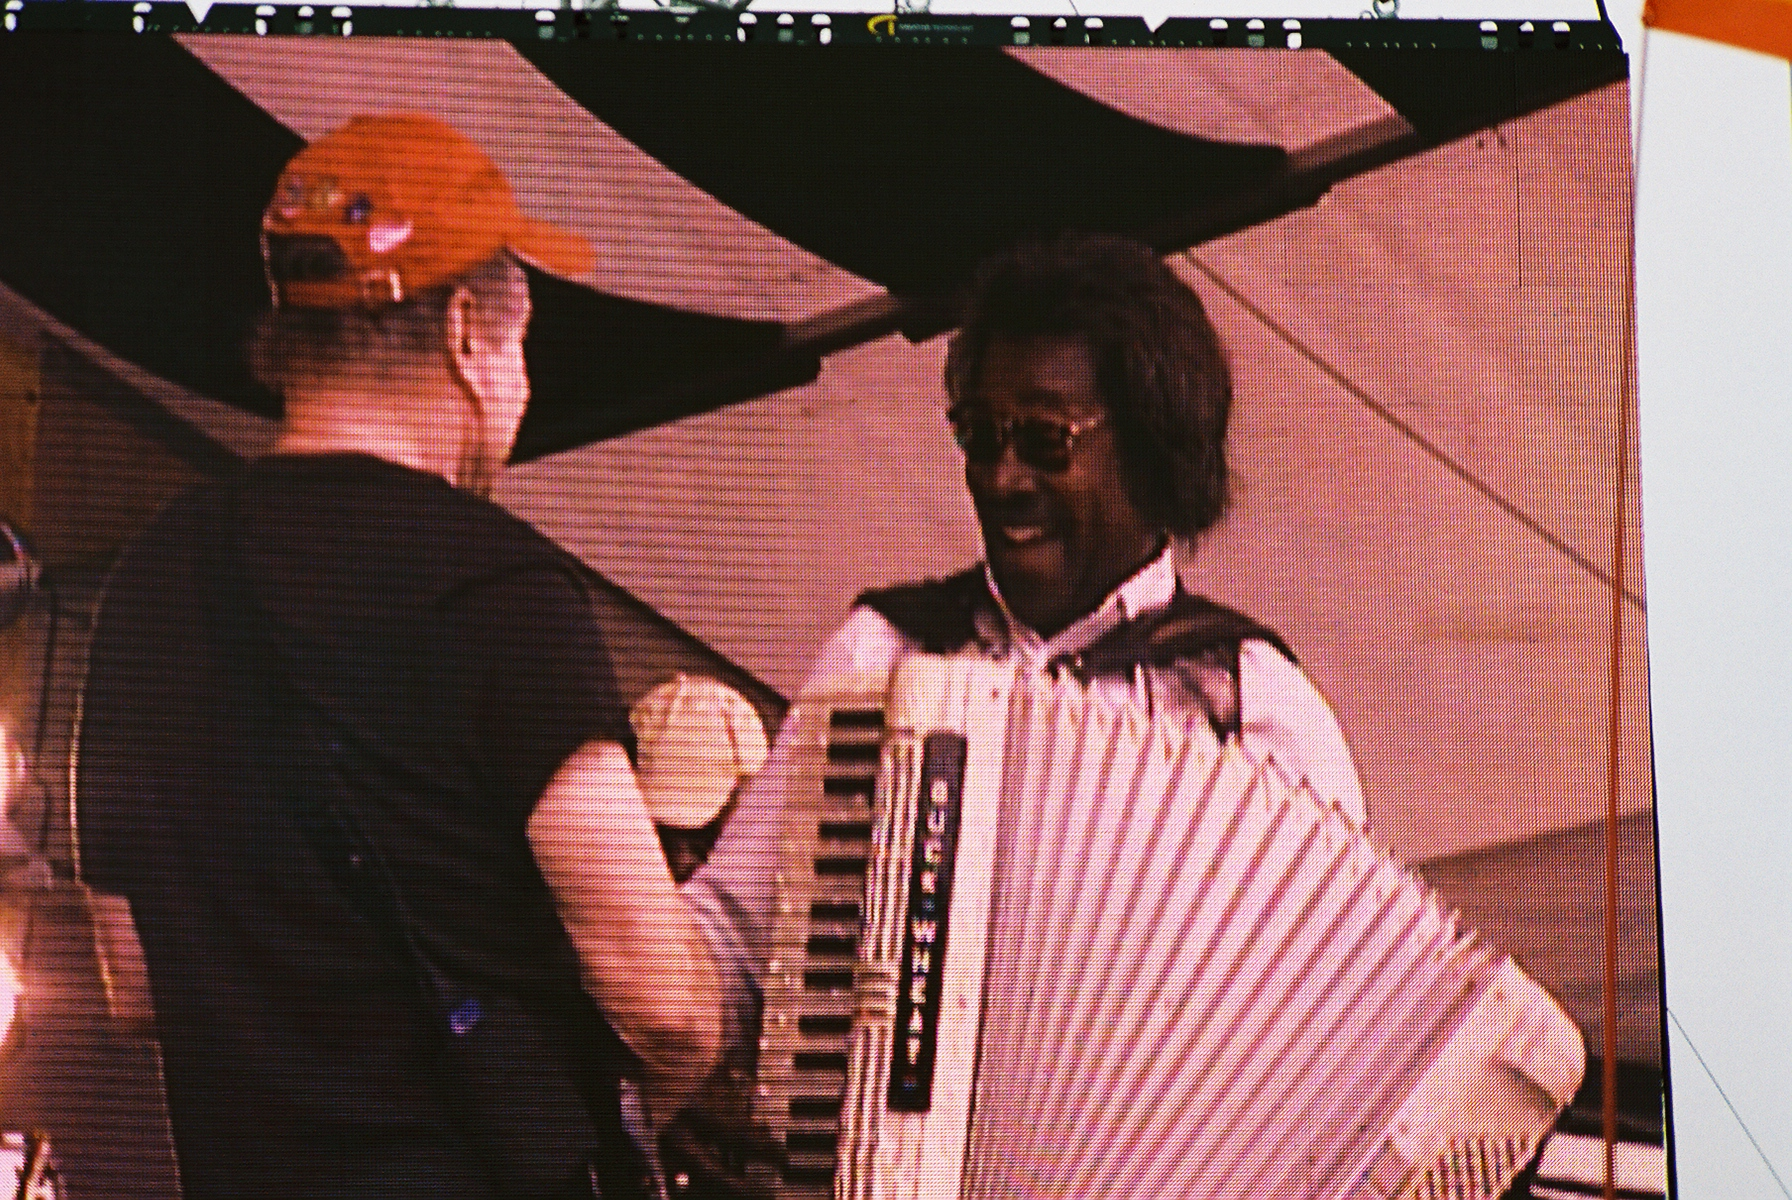 Paul Simon & Buckwheat Zydeco at Jazz Fest 2006